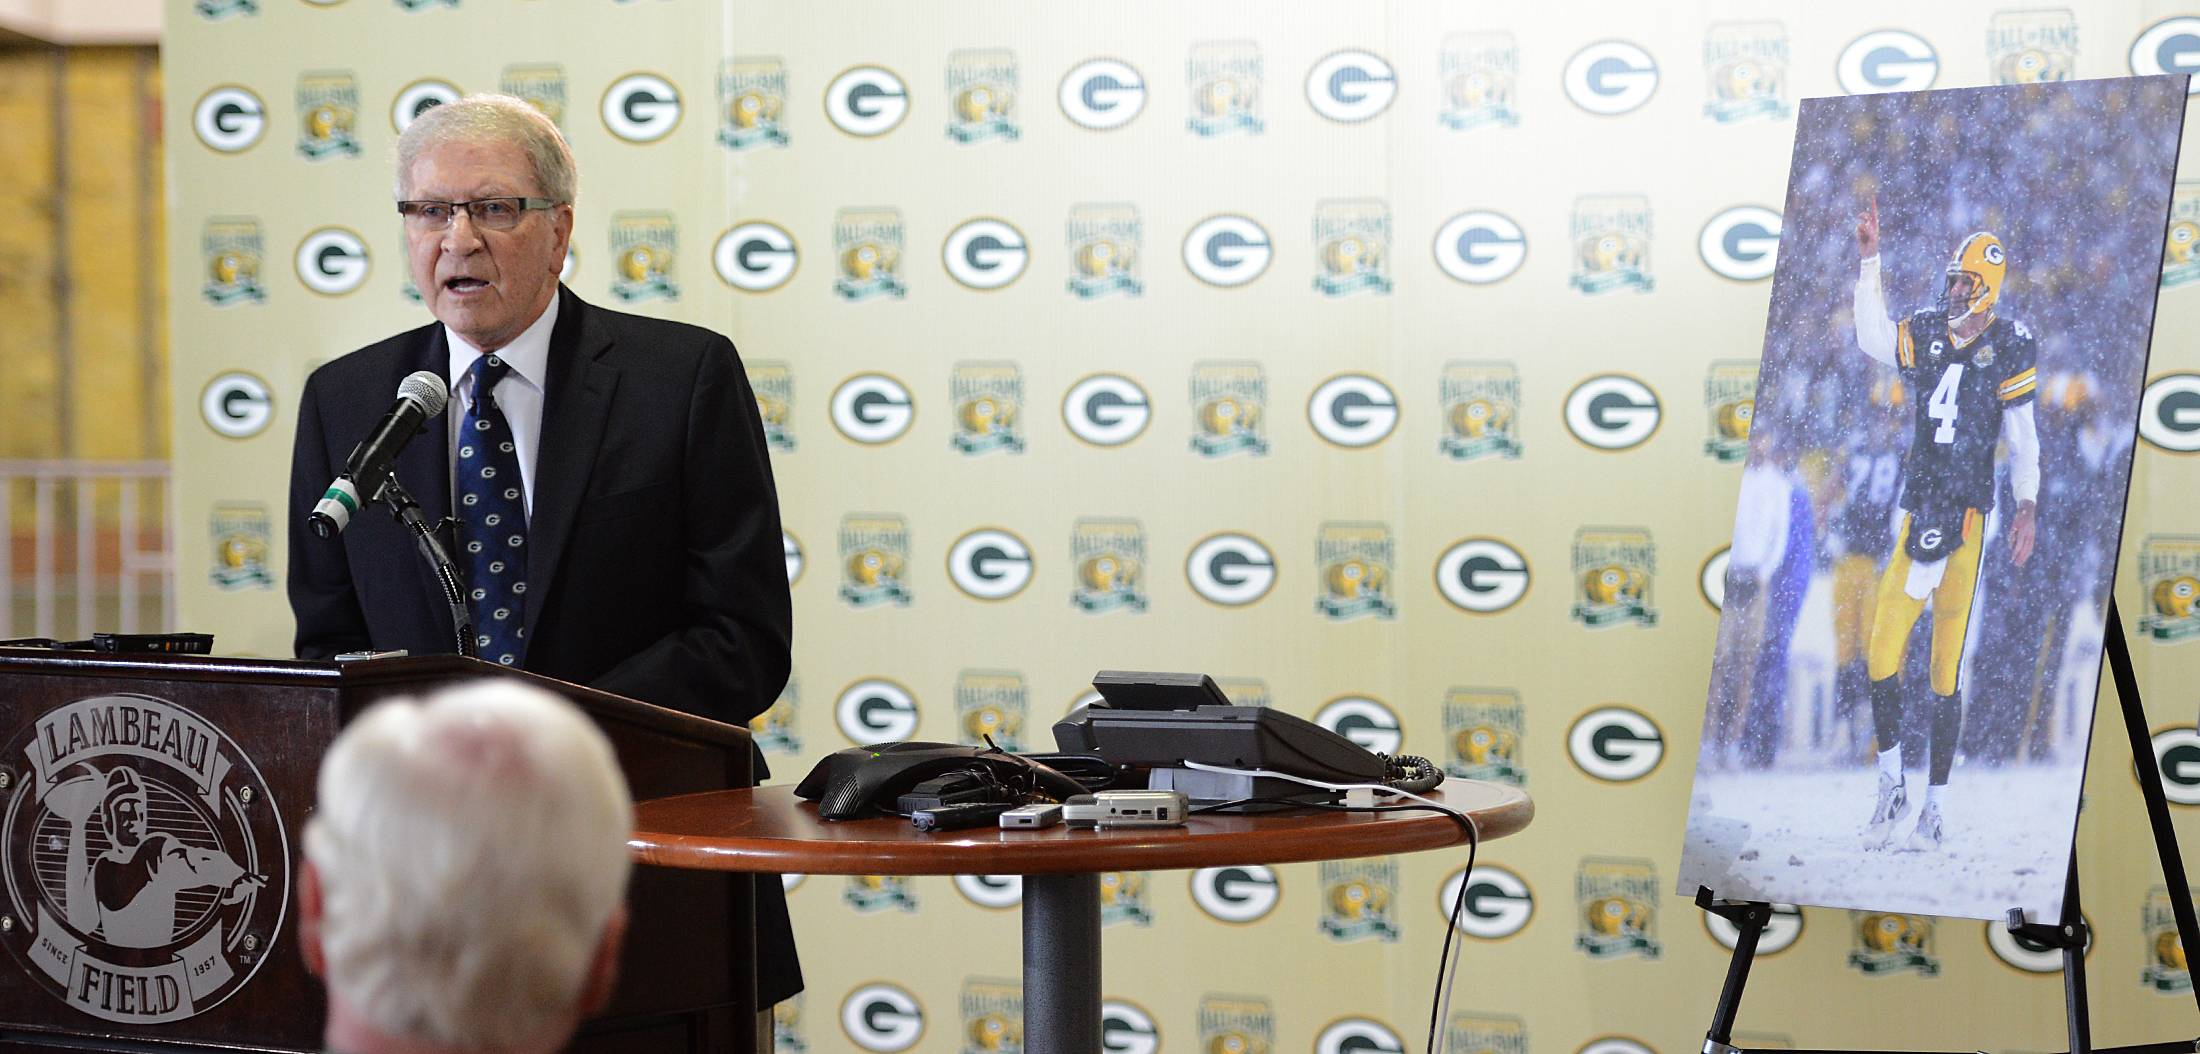 Former Green Bay Packers president/CEO Bob Harlan participates in the news conference announcing that the induction of Brett Favre into the Green Bay Packers Hall of Fame will take place July 18, 2015.